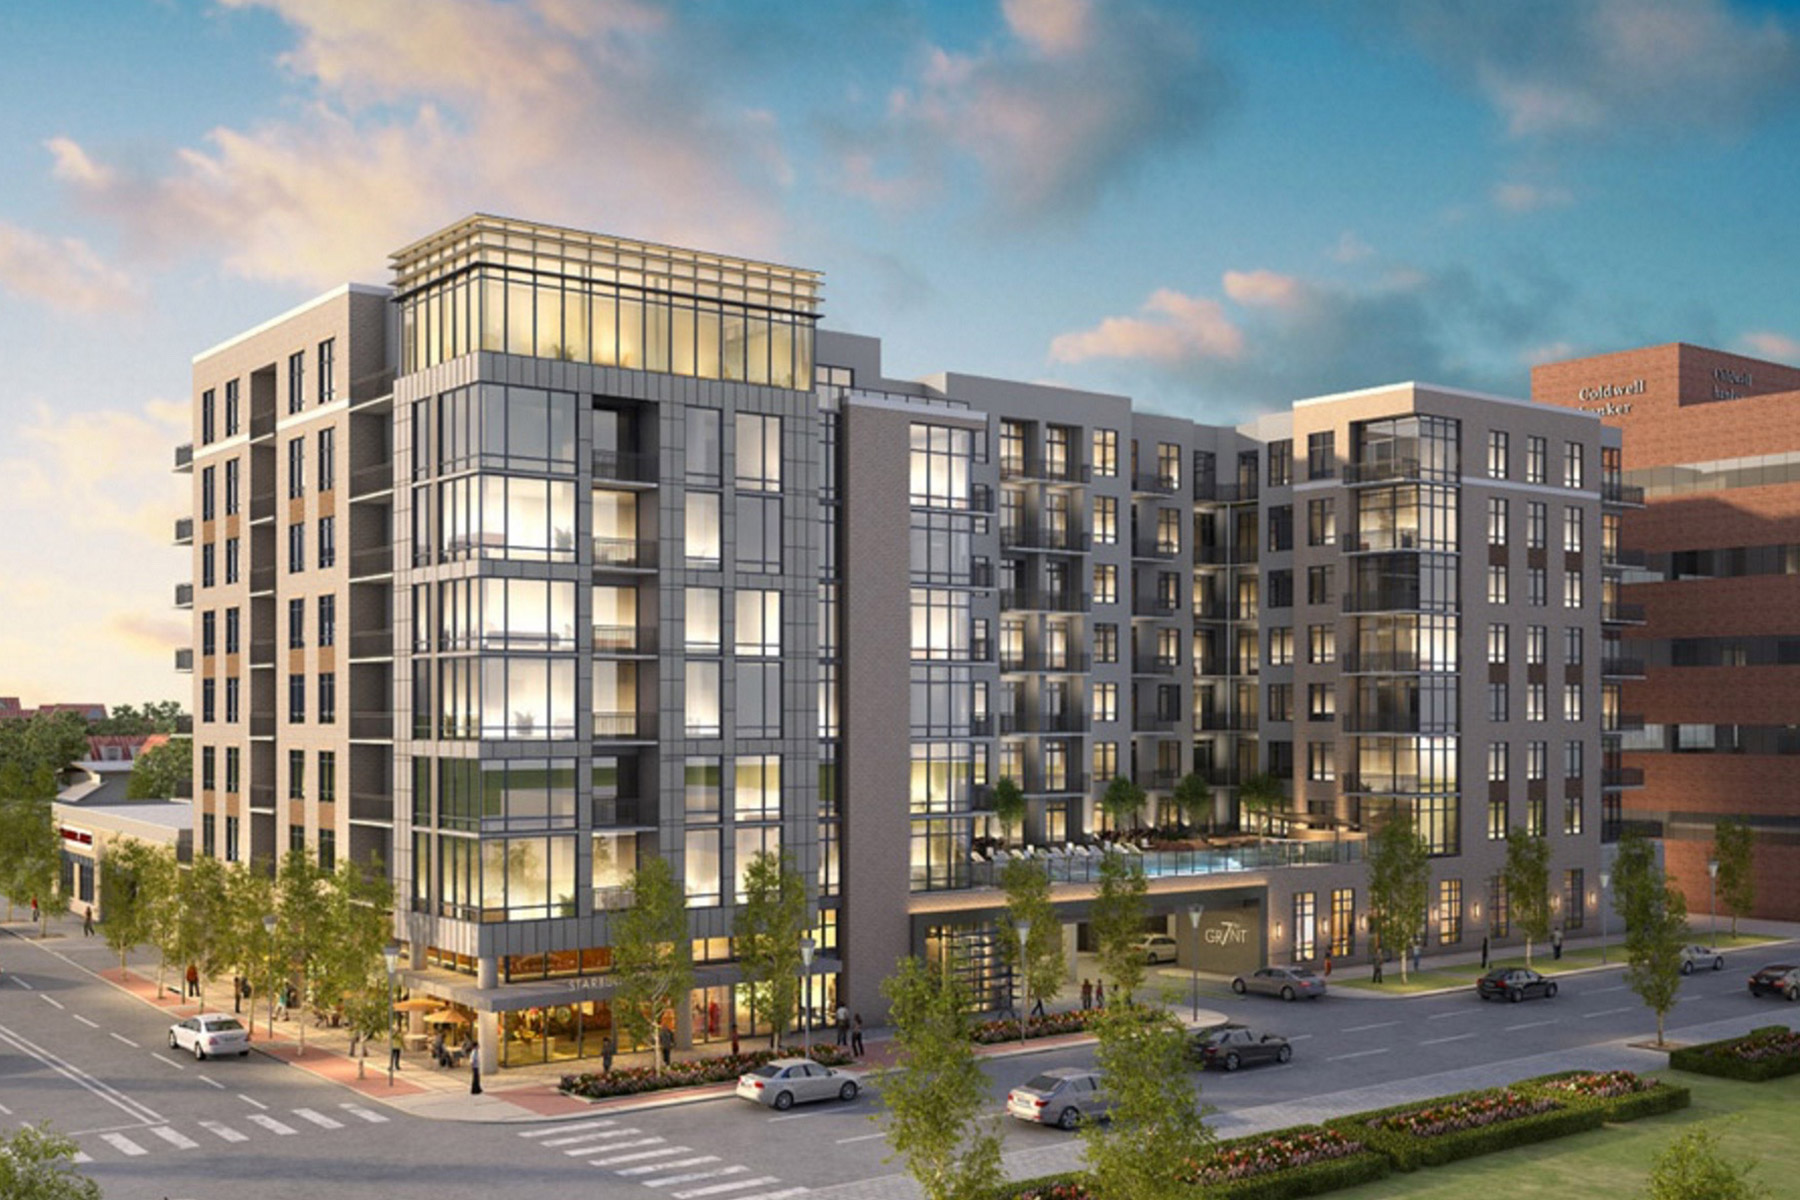 Rendering of Vantage 7th and Grant by Ziegler Cooper Architects